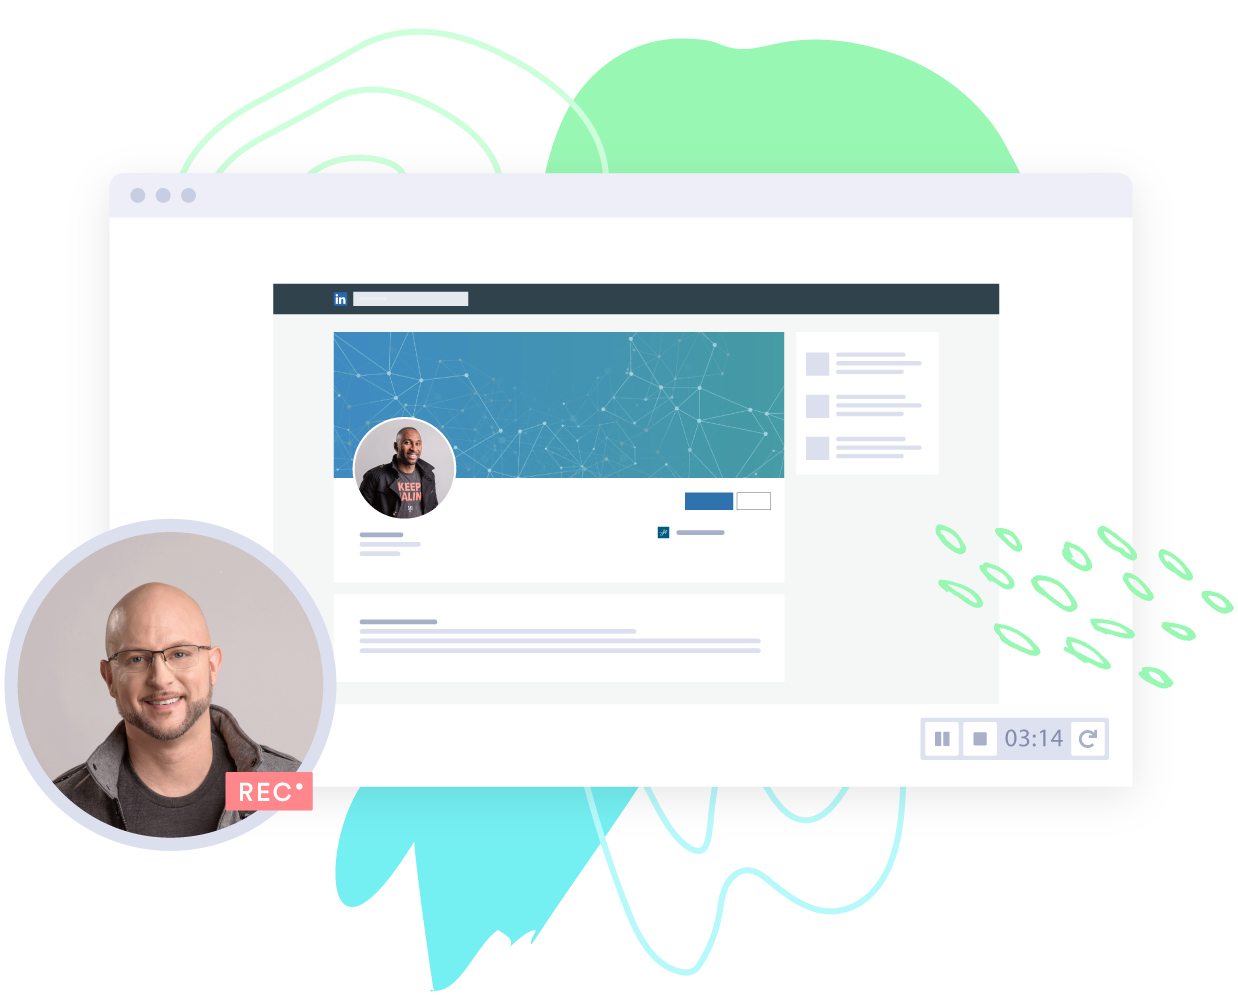 A sales rep uses Vidyard as a sales tool to connect, convert, and close more business.